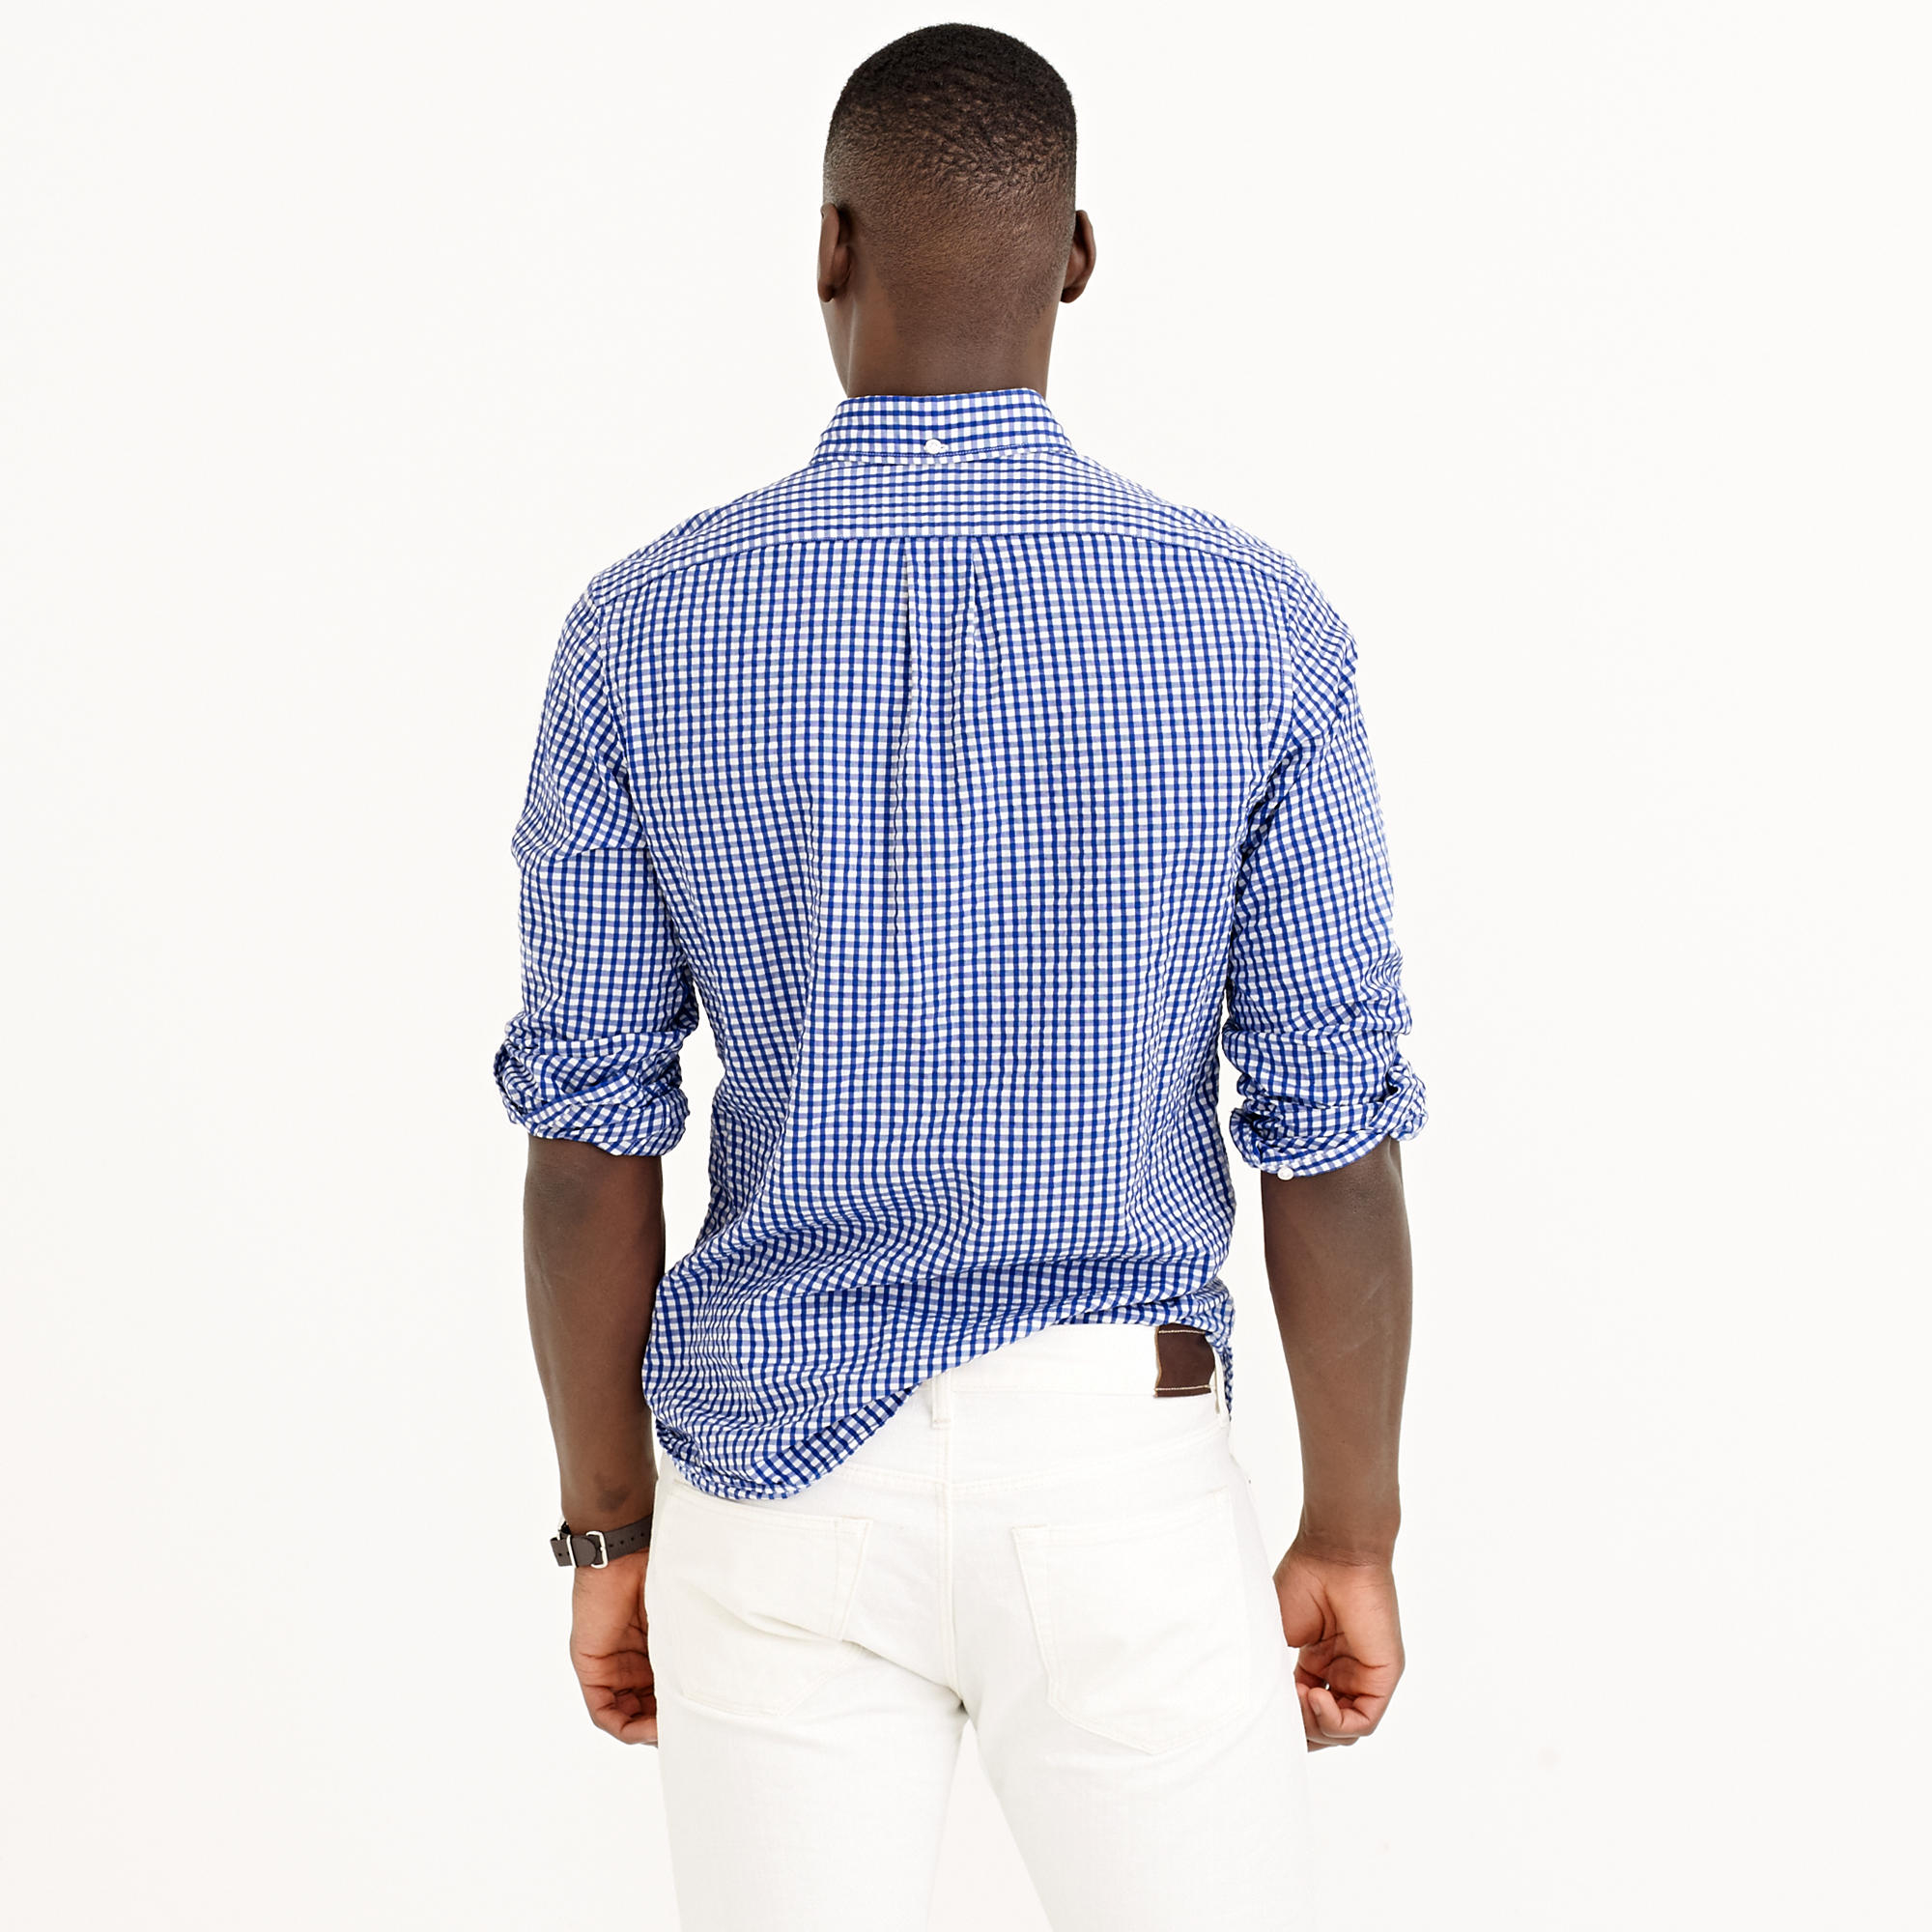 Lyst j crew slim seersucker shirt in estate blue gingham for Mens seersucker shirts on sale